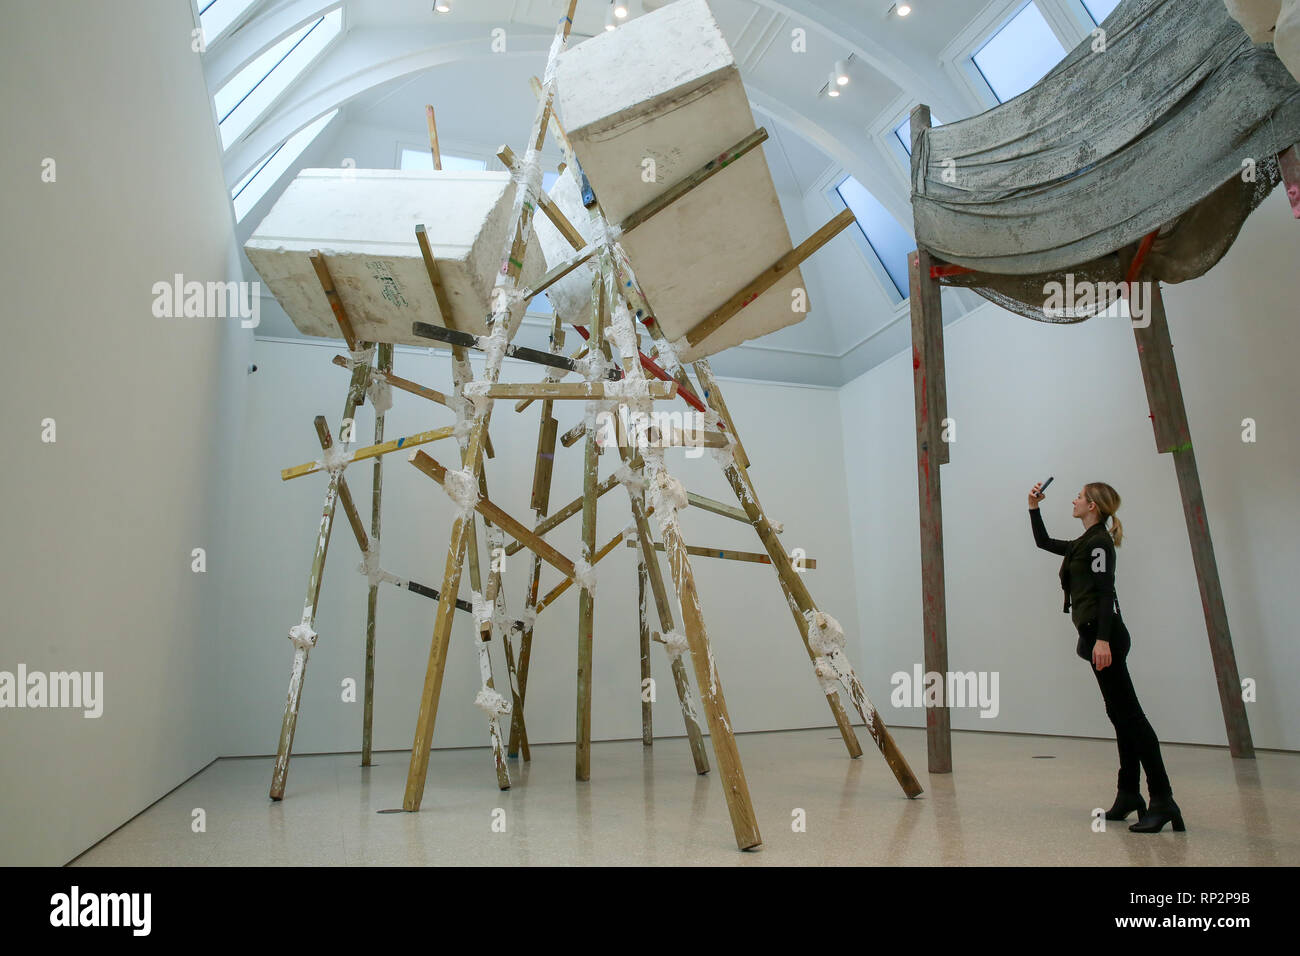 London, UK. 20th Feb, 2019. A woman is seen taking photos of Phyllida Barlow's installation at the Royal Academy of Arts in London.British artist Phyllida Barlow transforms the Royal Academy's Gabrielle Jungels-Winkler Galleries with an exhibition of entirely new work, entitled cul-de-sac. The exhibition has been conceived as a sequential installation running across all three of the interconnected spaces. The exhibition is open to the public from 23 February until 23 June 2019. Credit: Dinendra Haria/SOPA Images/ZUMA Wire/Alamy Live News Stock Photo